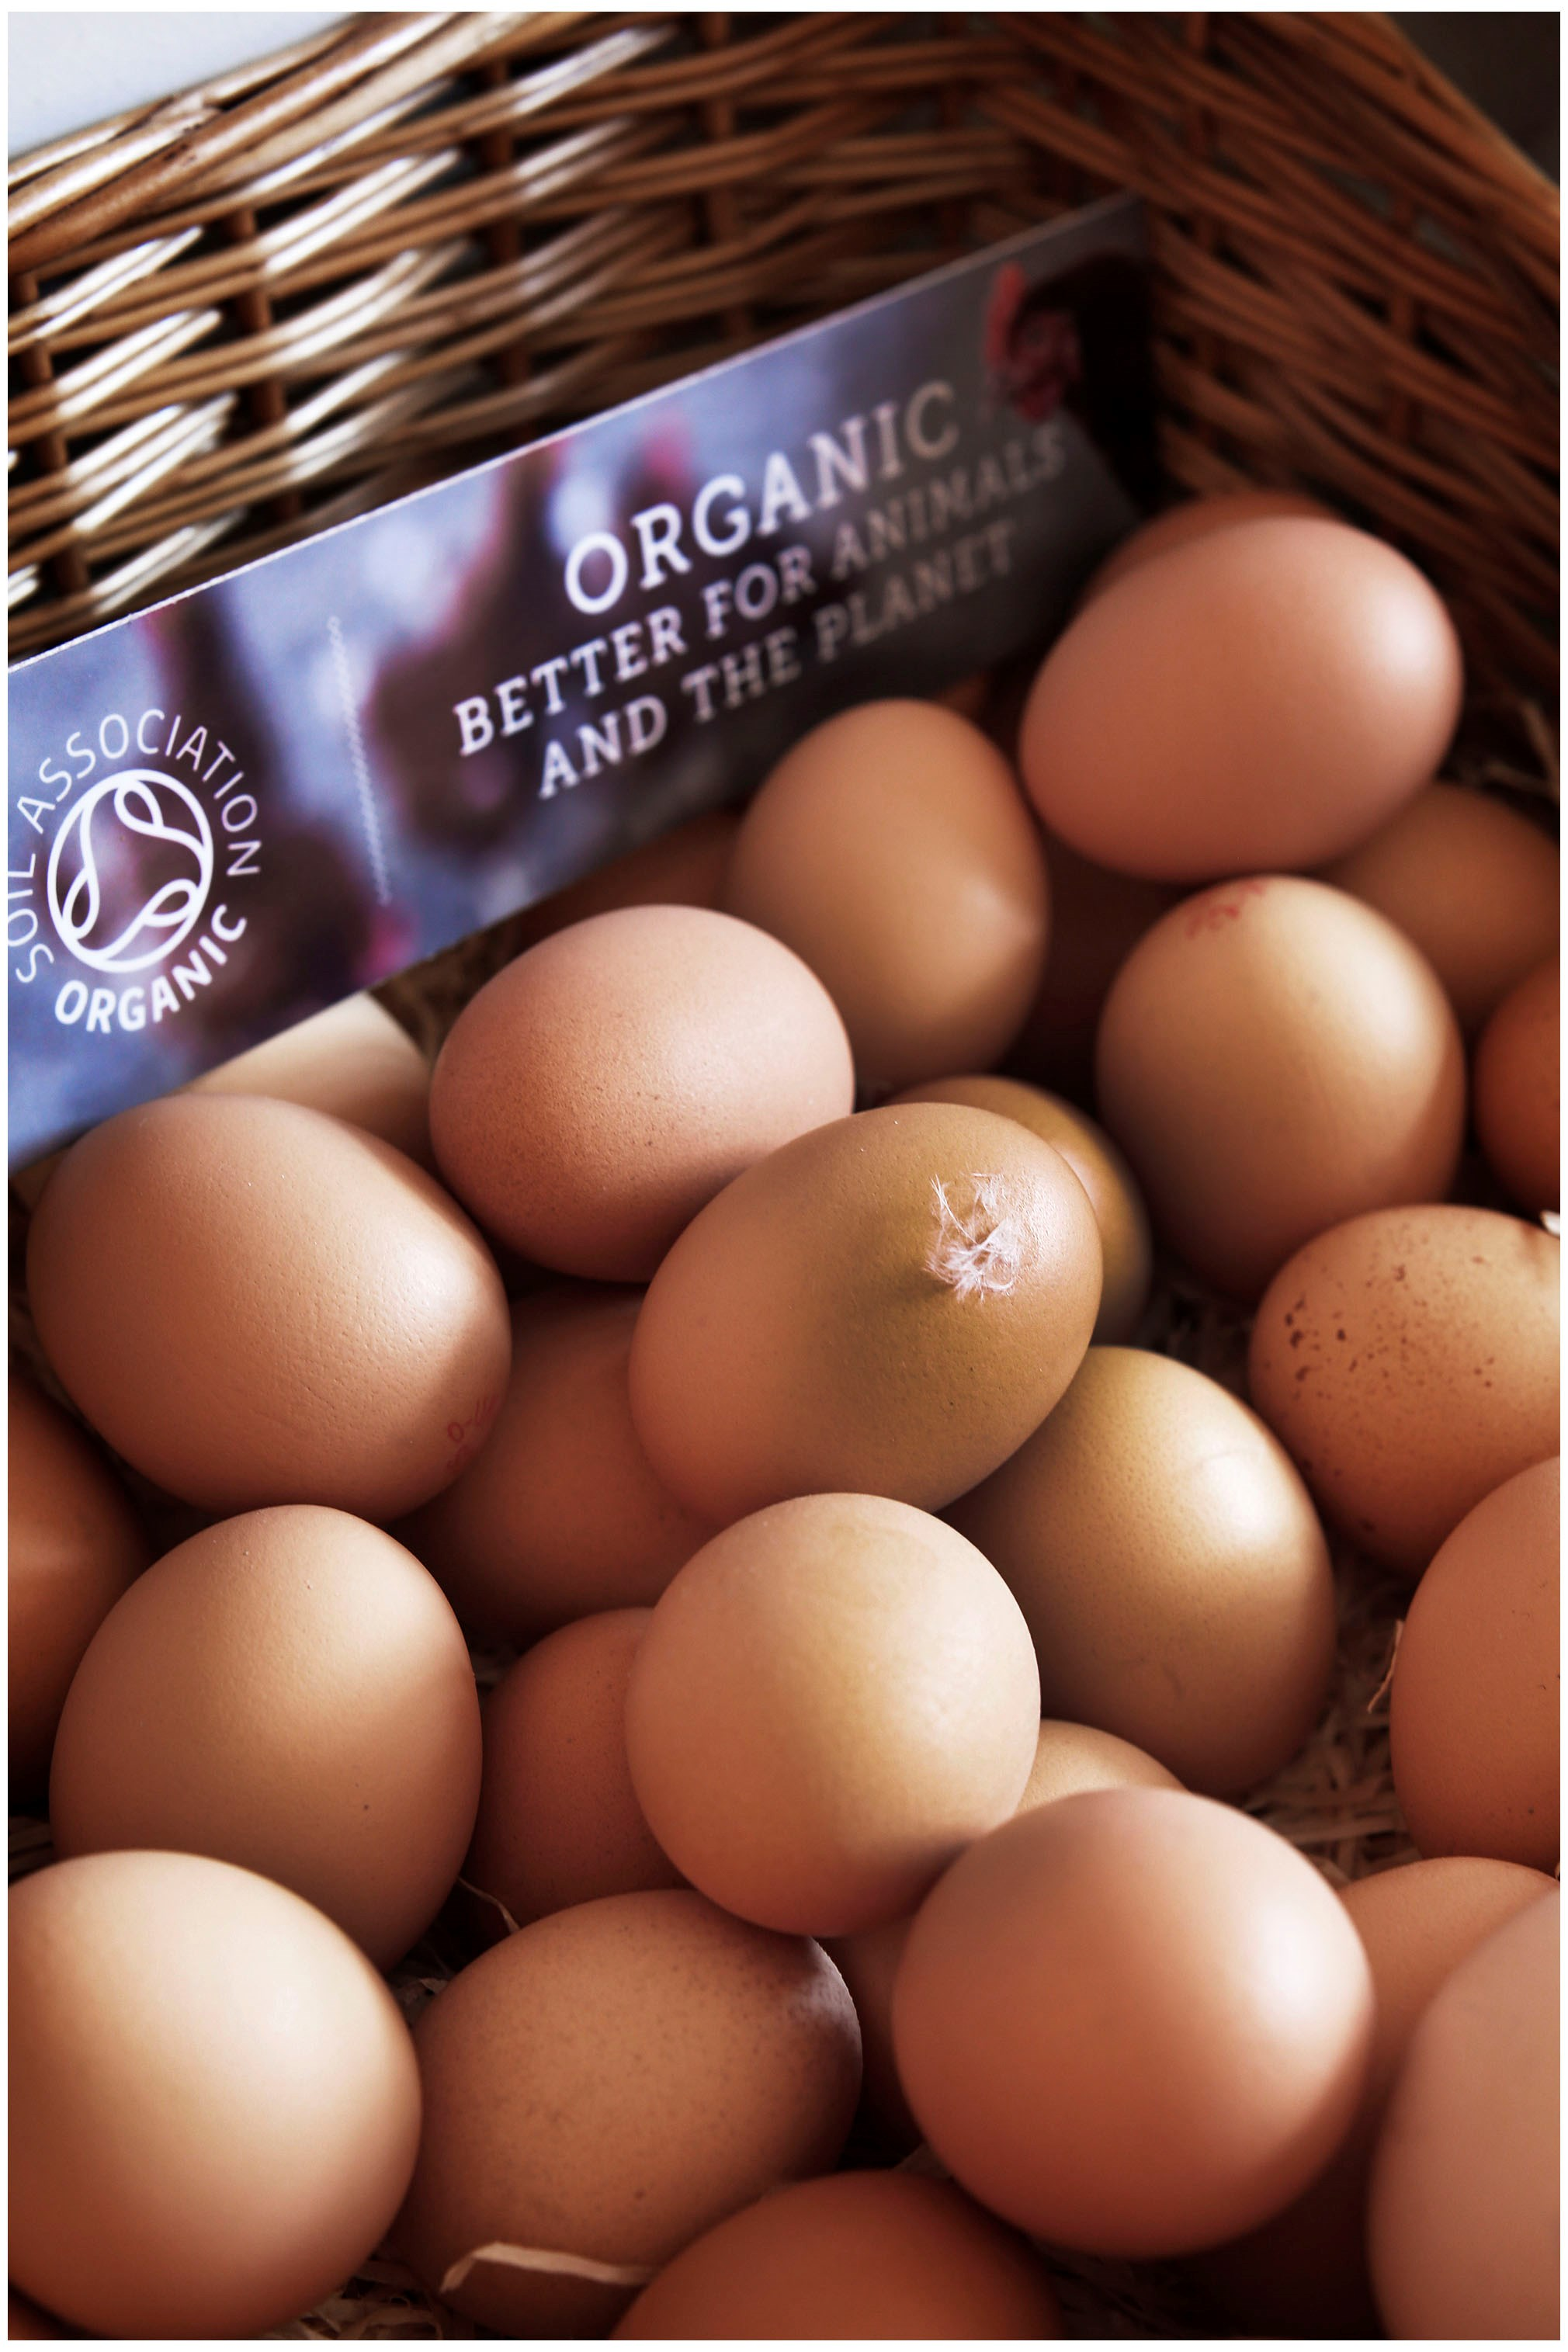 Organic vs Free-Range Eggs - What's the Difference?